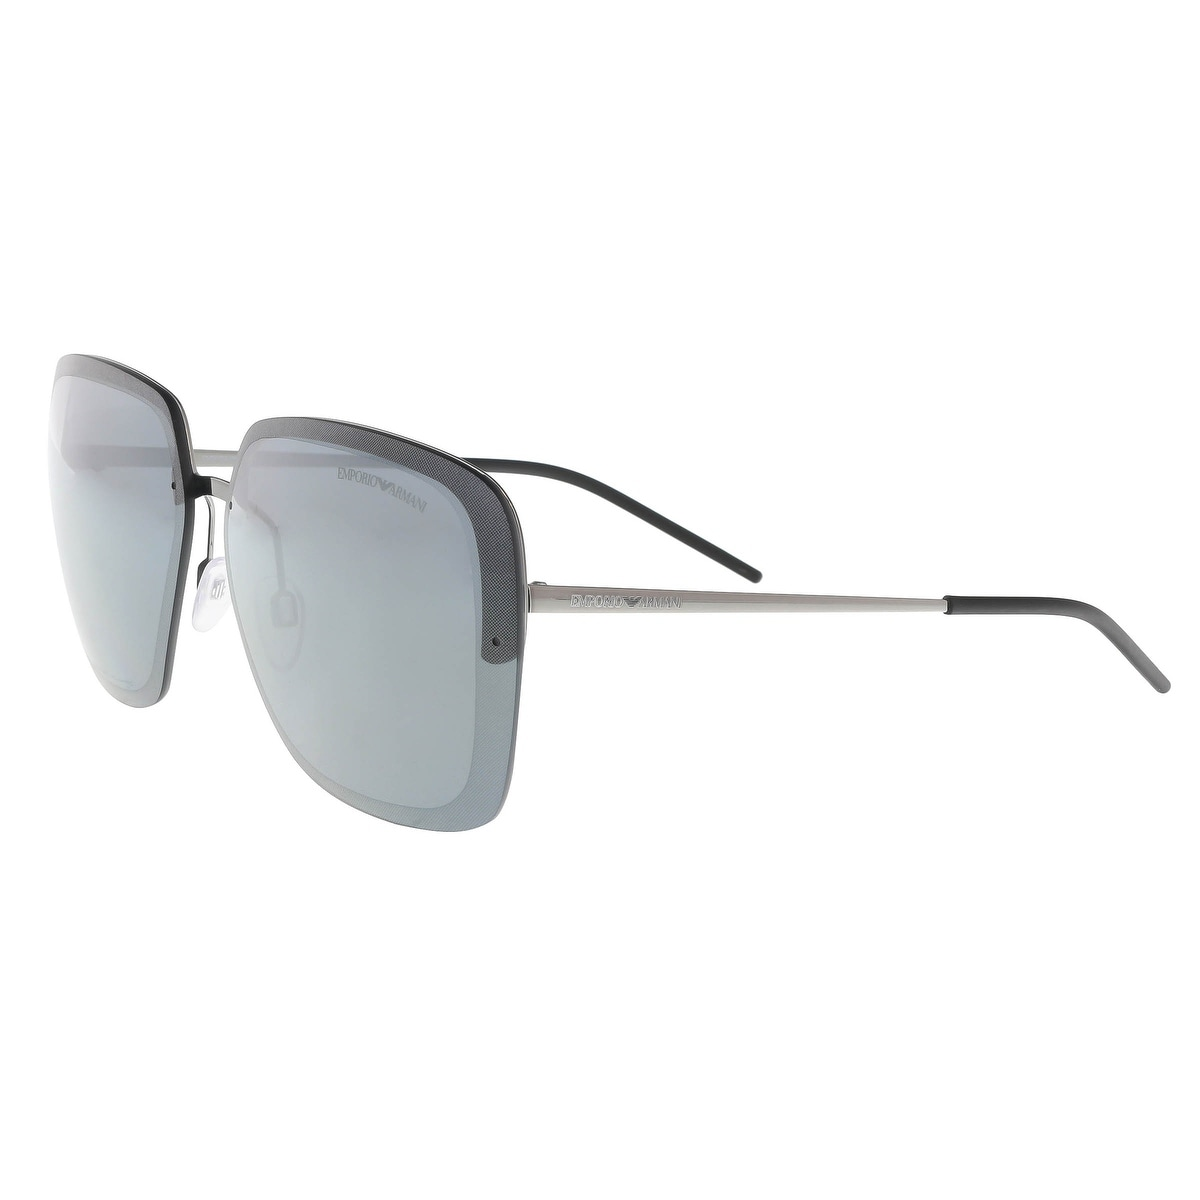 a7ee1d6c7b Shop Emporio Armani EA2045 30106G Charcoal Silver Square Sunglasses - 62-12- 140 - Free Shipping Today - Overstock.com - 19518859